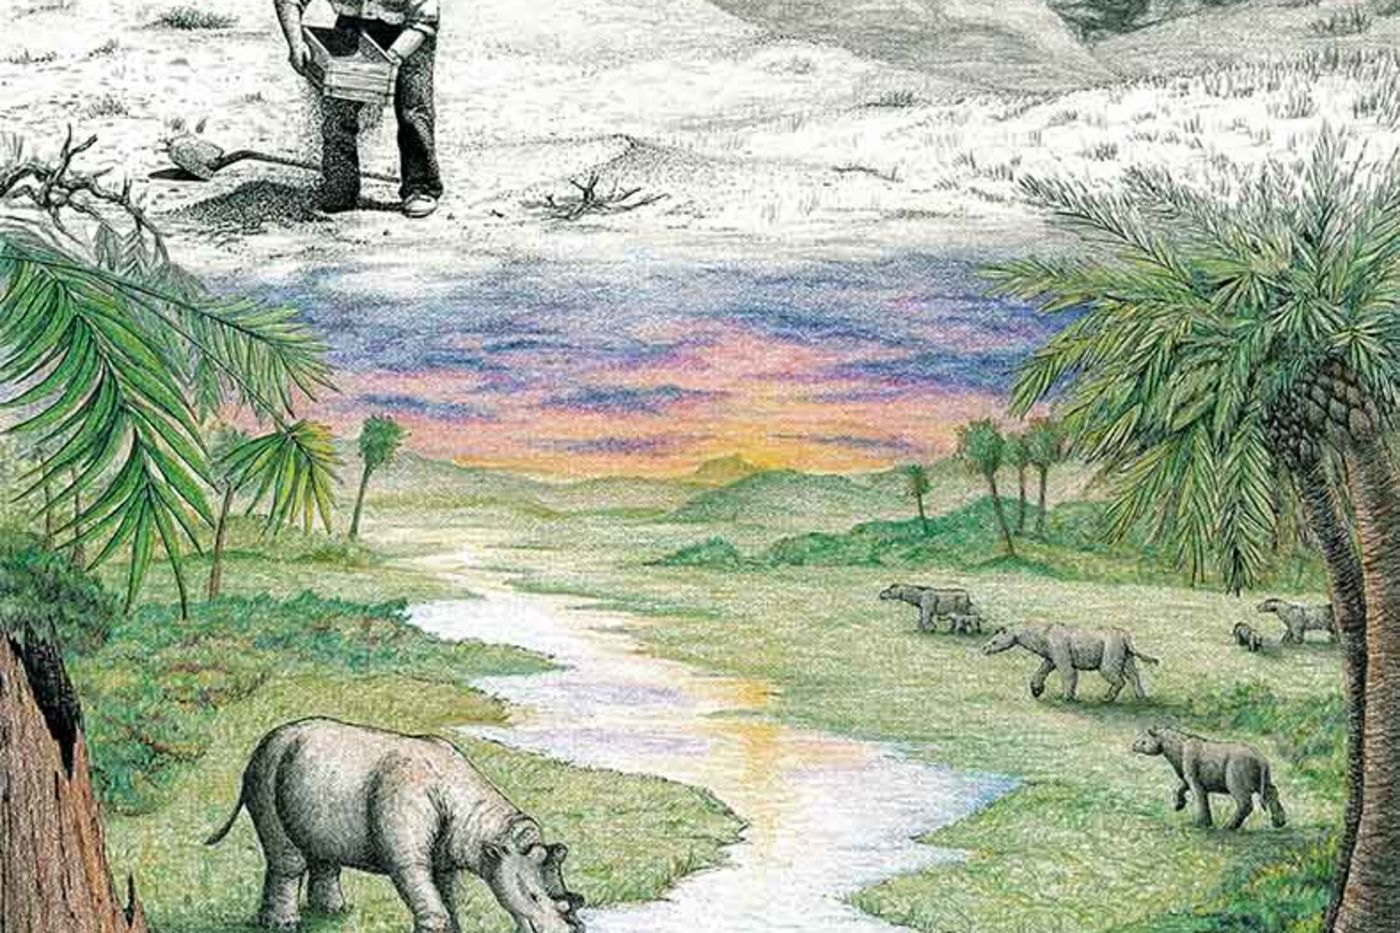 Black and white illustration of a man sifting sand through a screen in a mountainous terrain that transitions into a colorful landscape with palm trees, a stream, and a diverse array of prehistoric animals